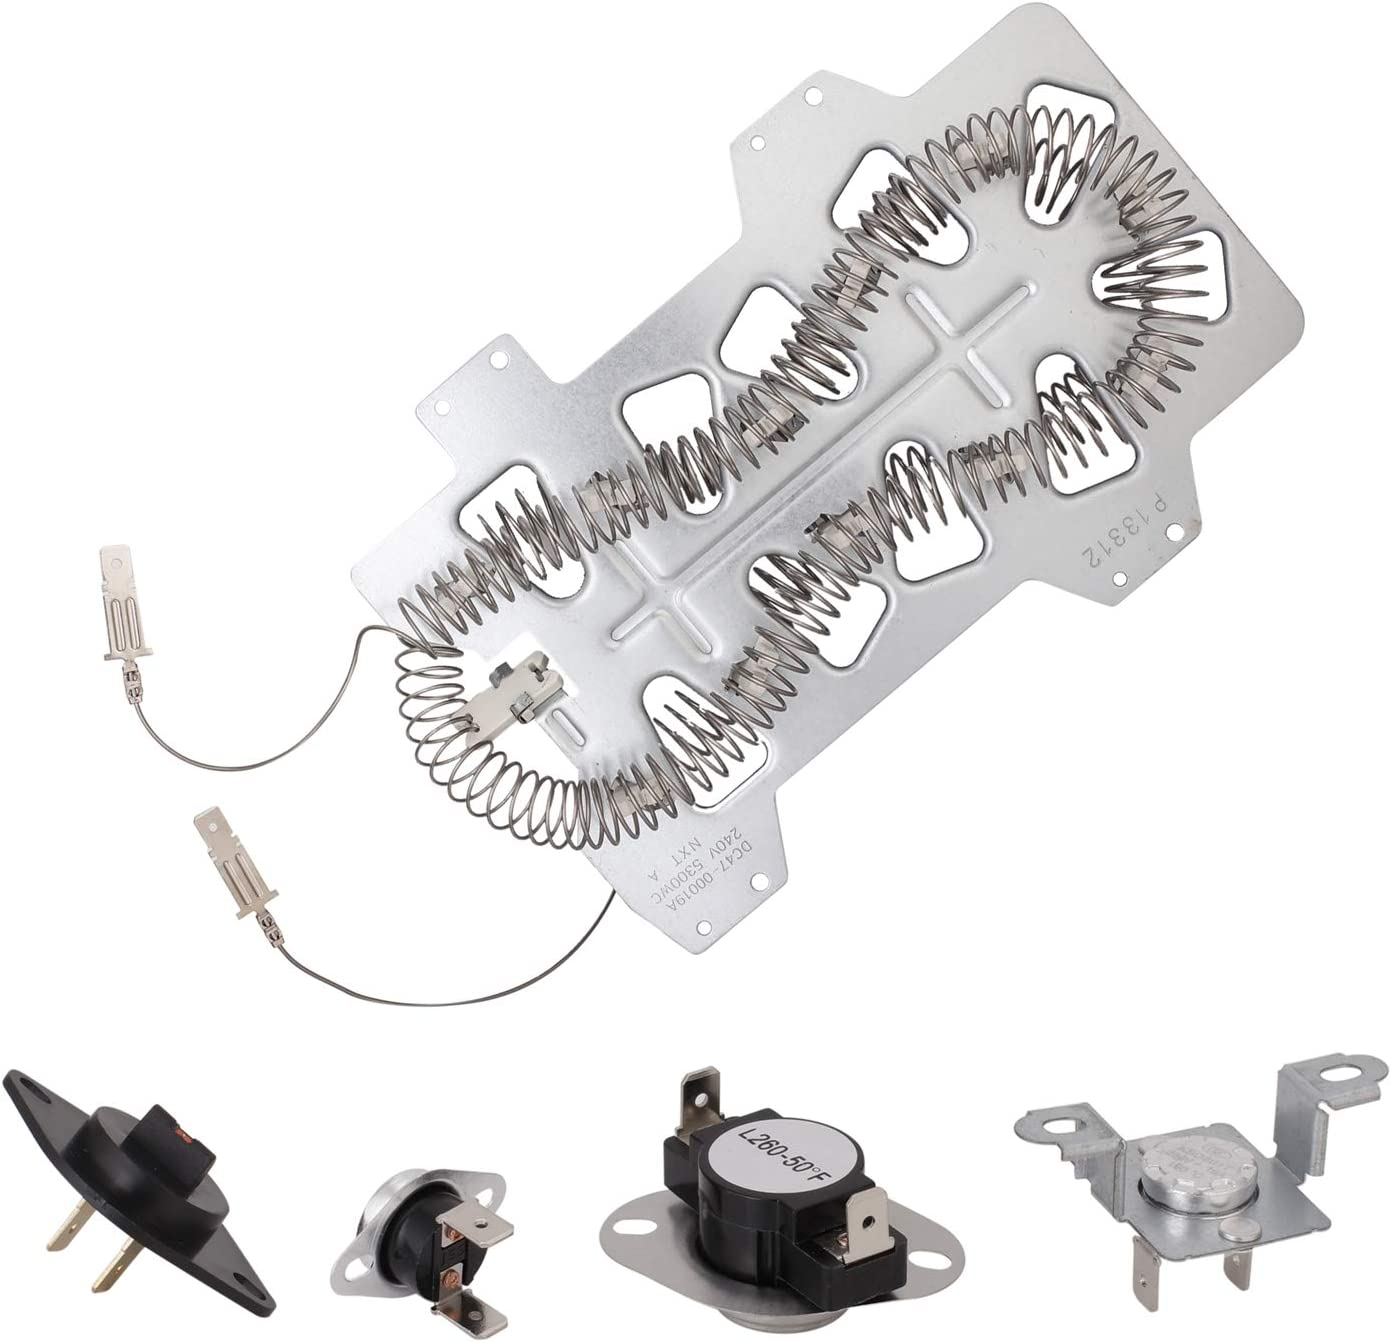 Dryer Heating Element for Samsung (DC47-00019A), Thermal Fuse (DC96-00887A and DC47-00016A), Dryer Thermistor (DC32-00007A), Thermostat (DC47-00018A) Dryer Repair Kit Replacement